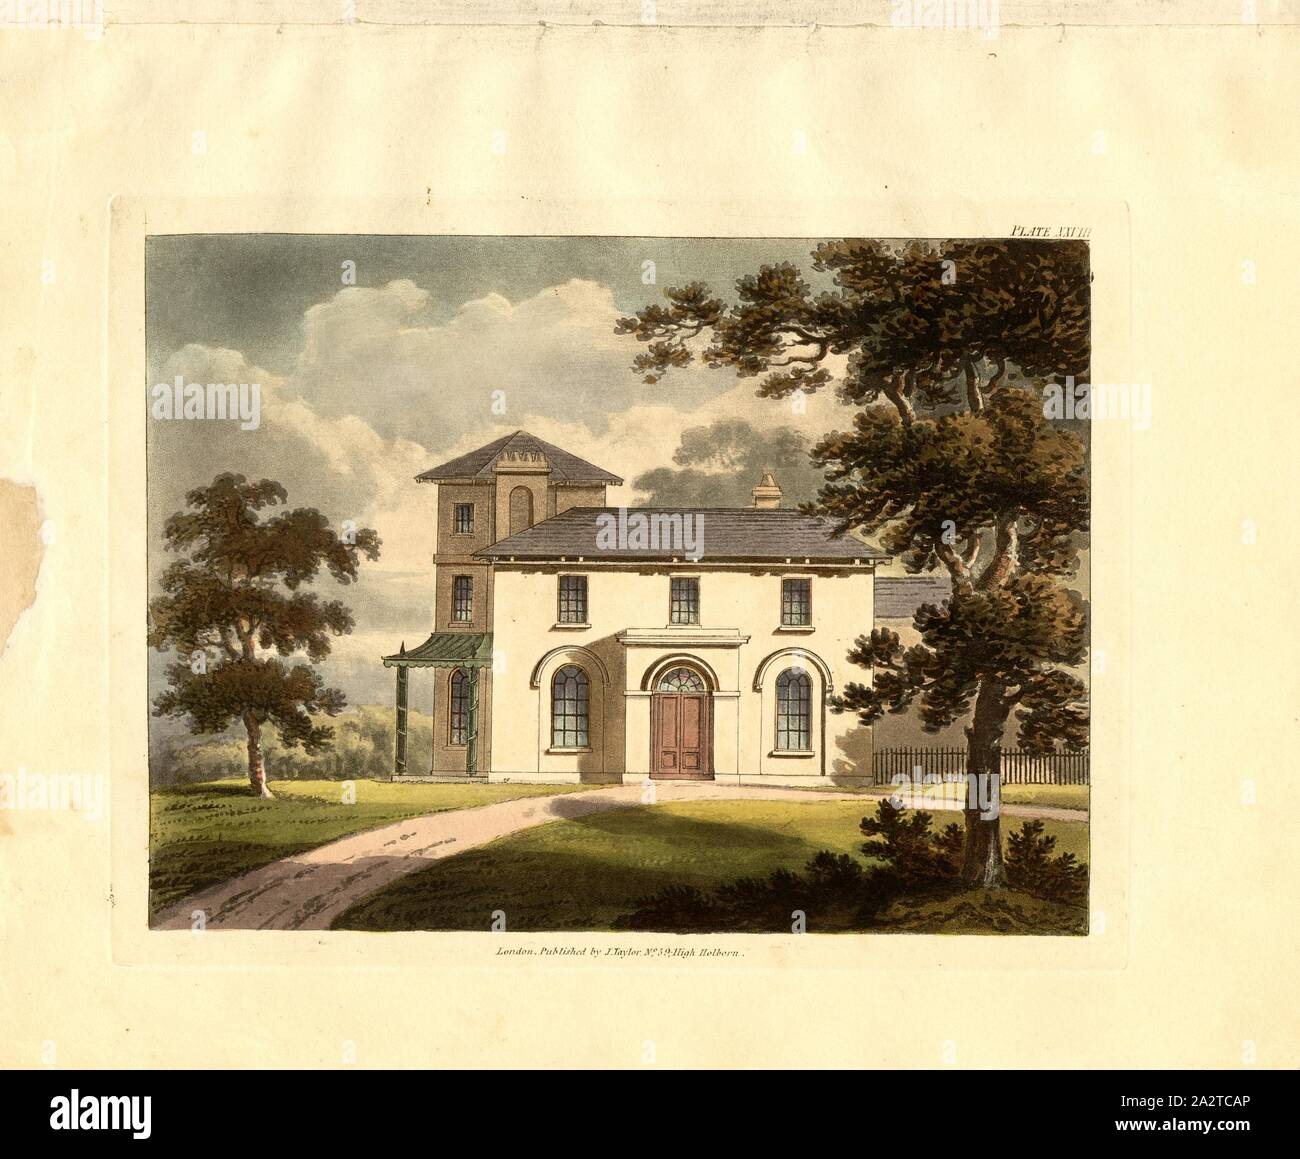 Italian Villa 2 An Elevation Of A House In The Style Of An Italian Villa Pl Xxviii After P 31 Robert Lugar Architectural Sketches For Cottages Rural Dwellings And Villas In The